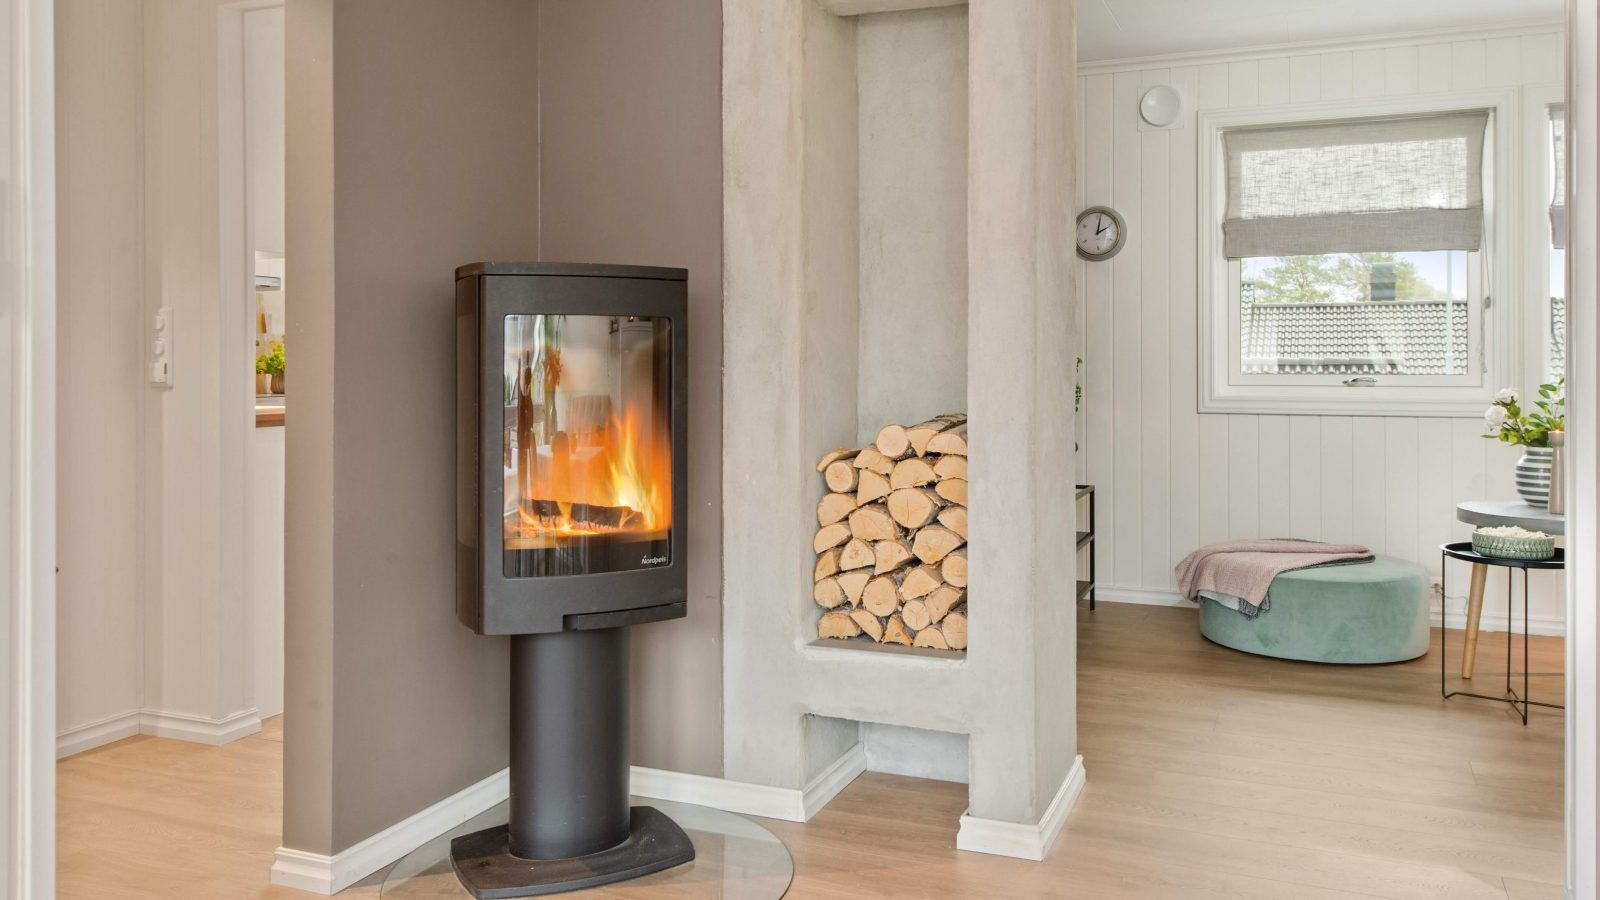 Amazing modern fireplace designs for a cosy orangery this winter